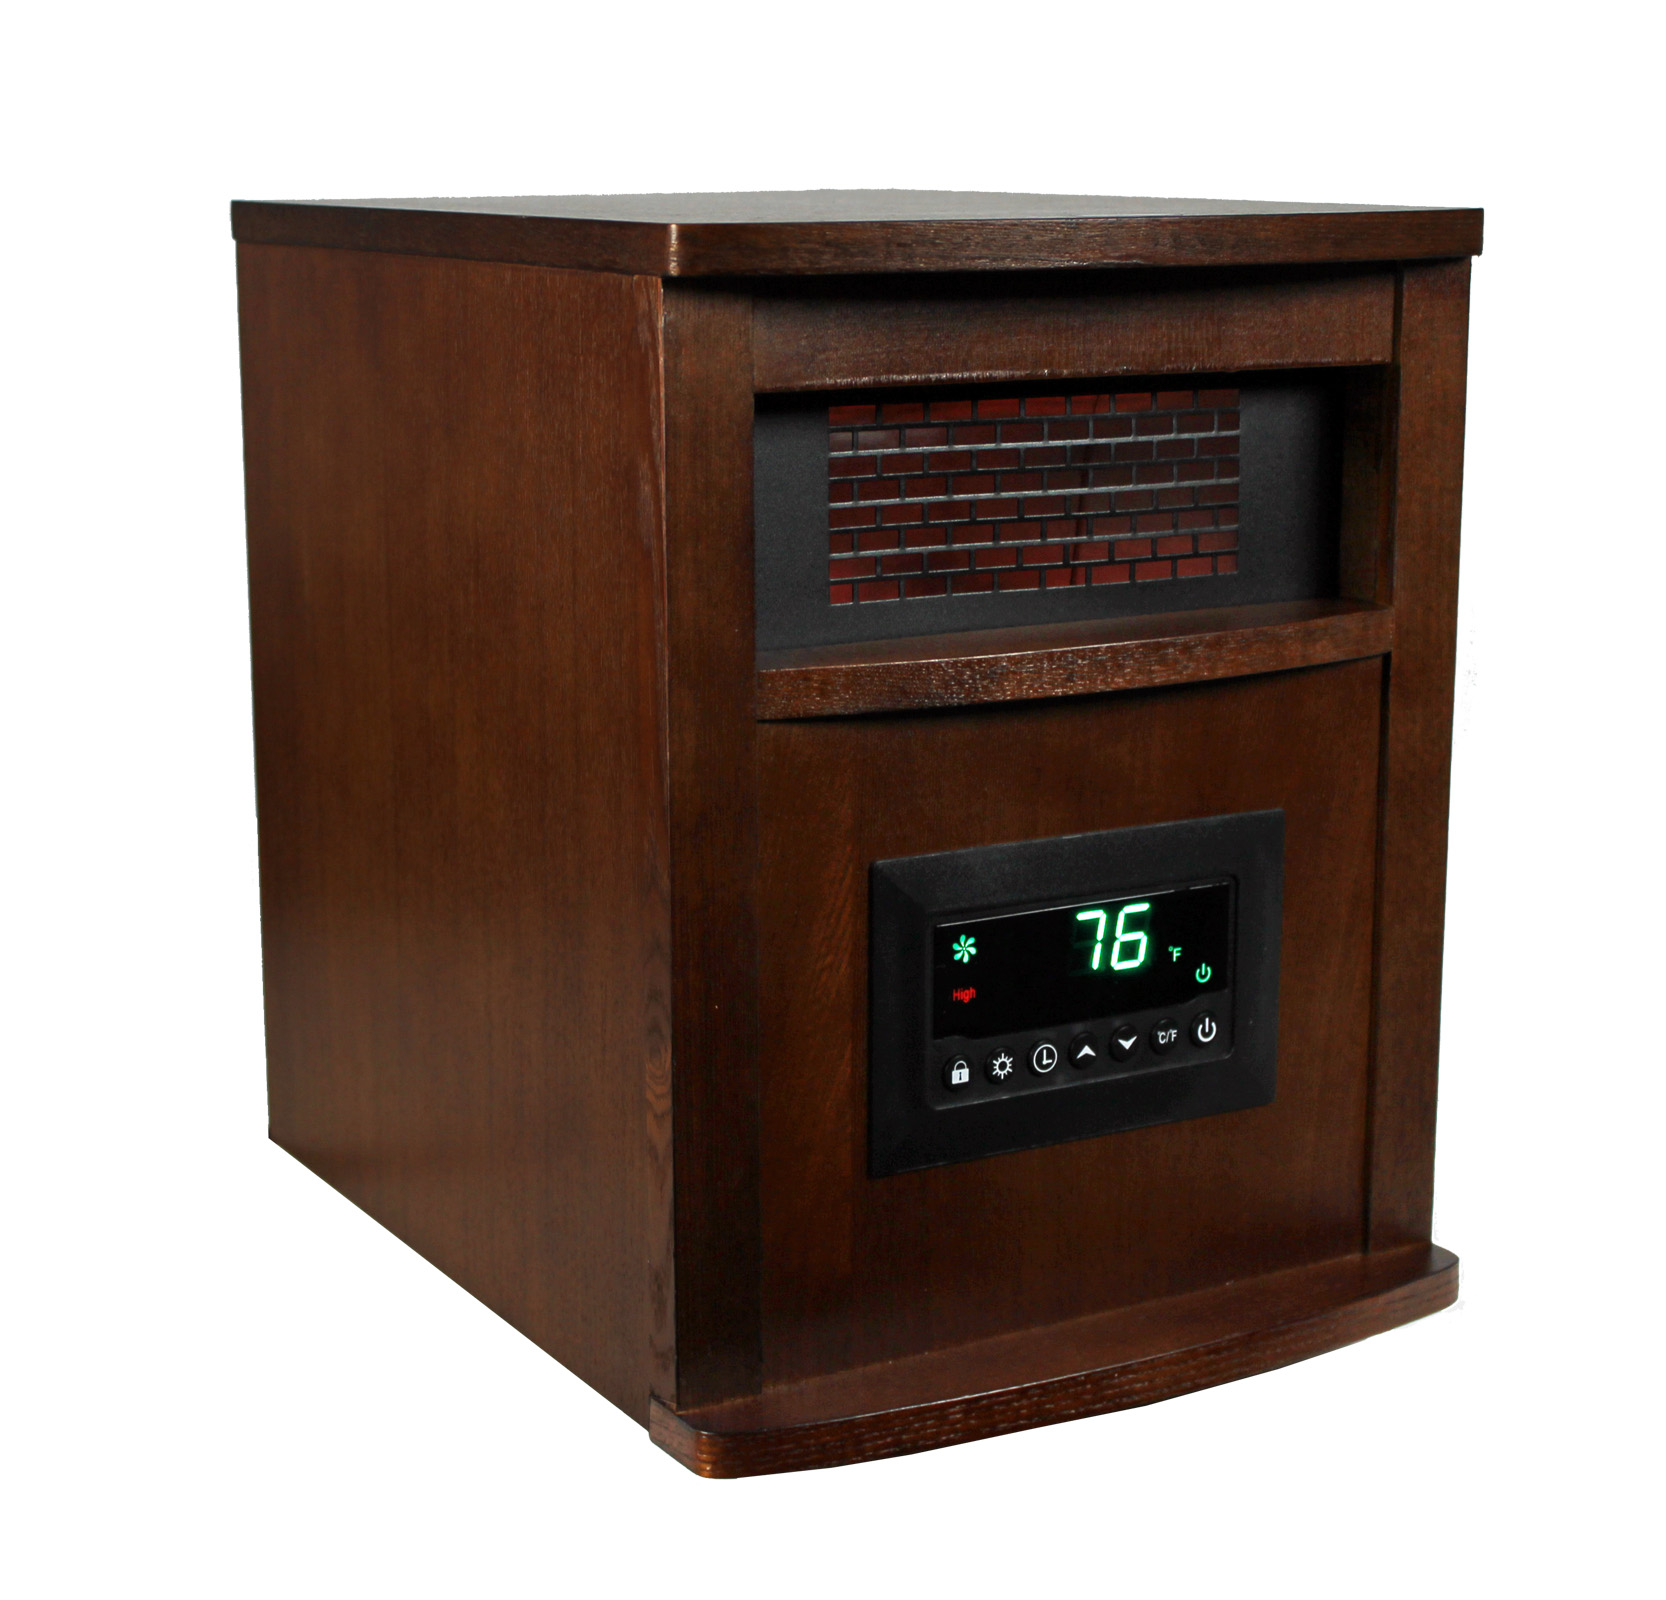 LS-1000HH�LifeSmart LifePro 1,500W Infrared Quartz Portable Heater | LS-1000HH